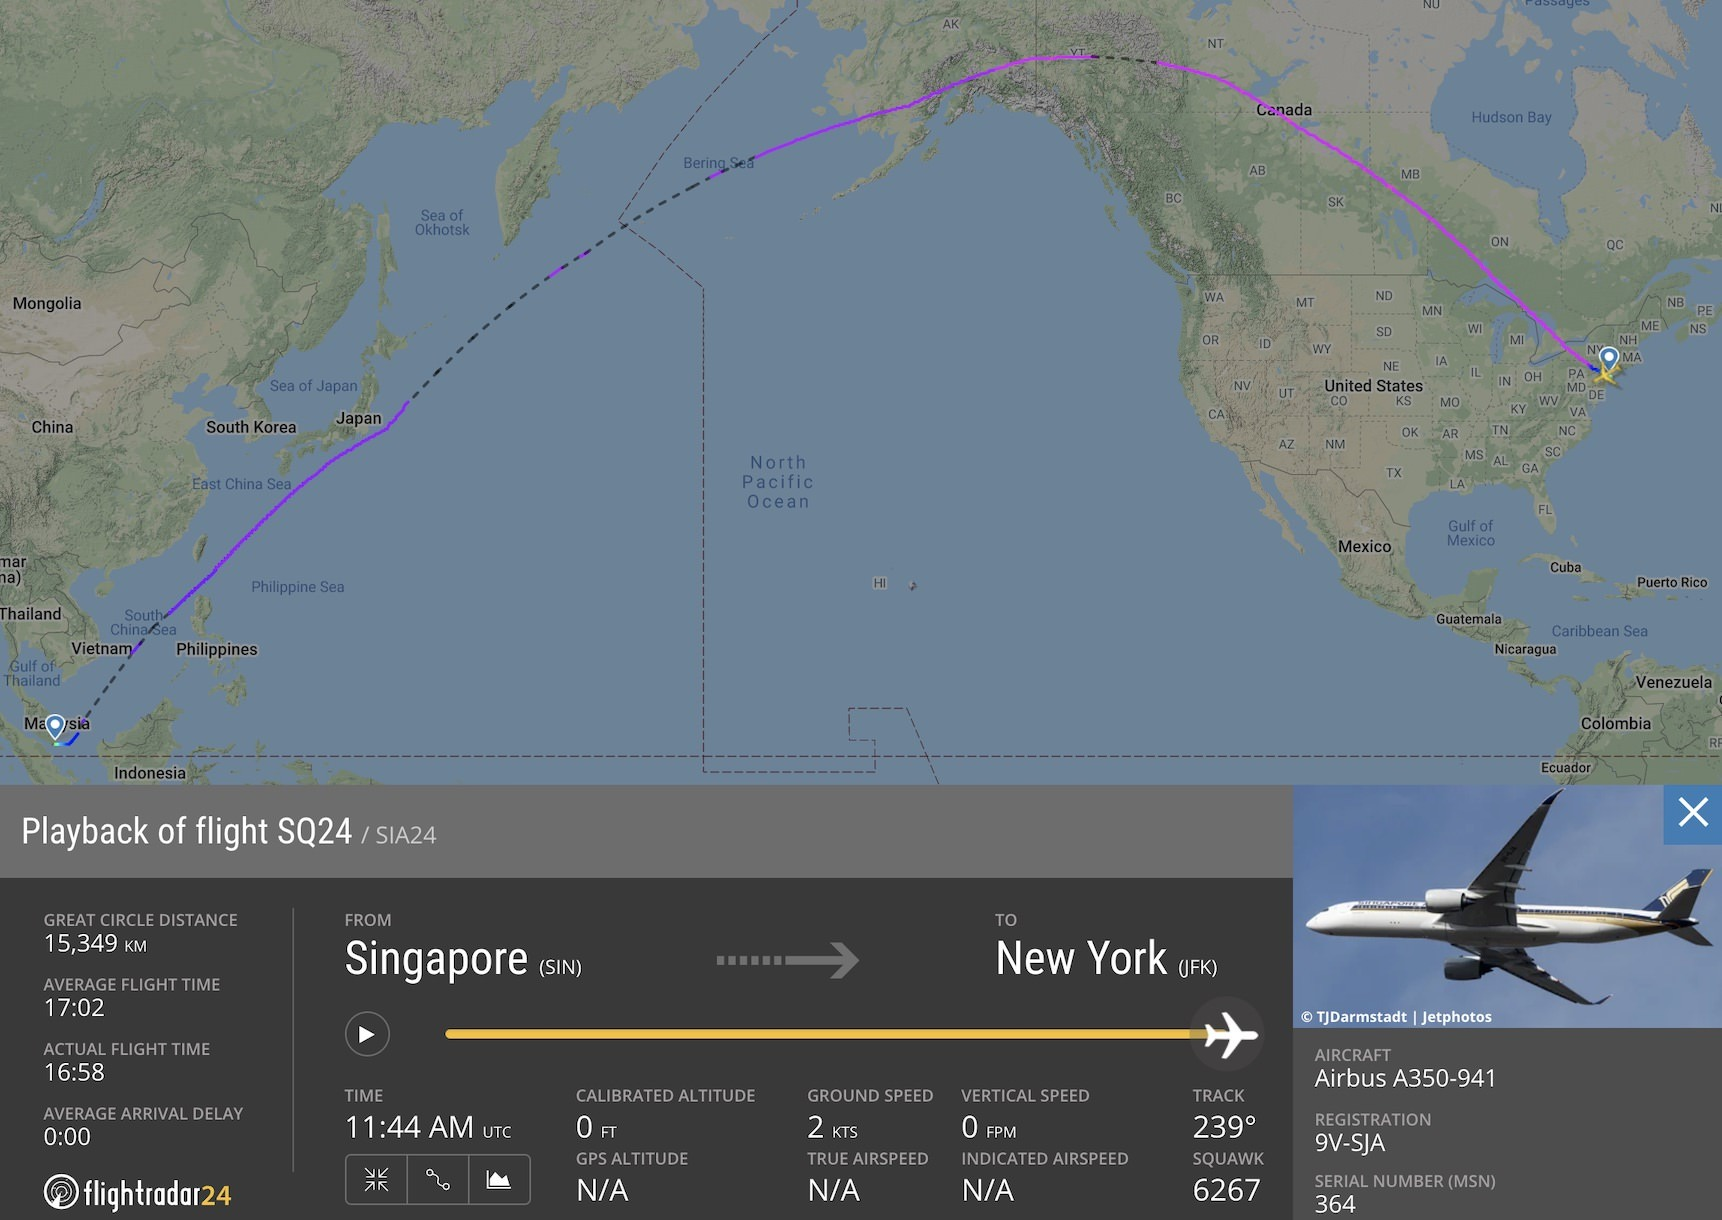 Singapore Airlines flight SQ24